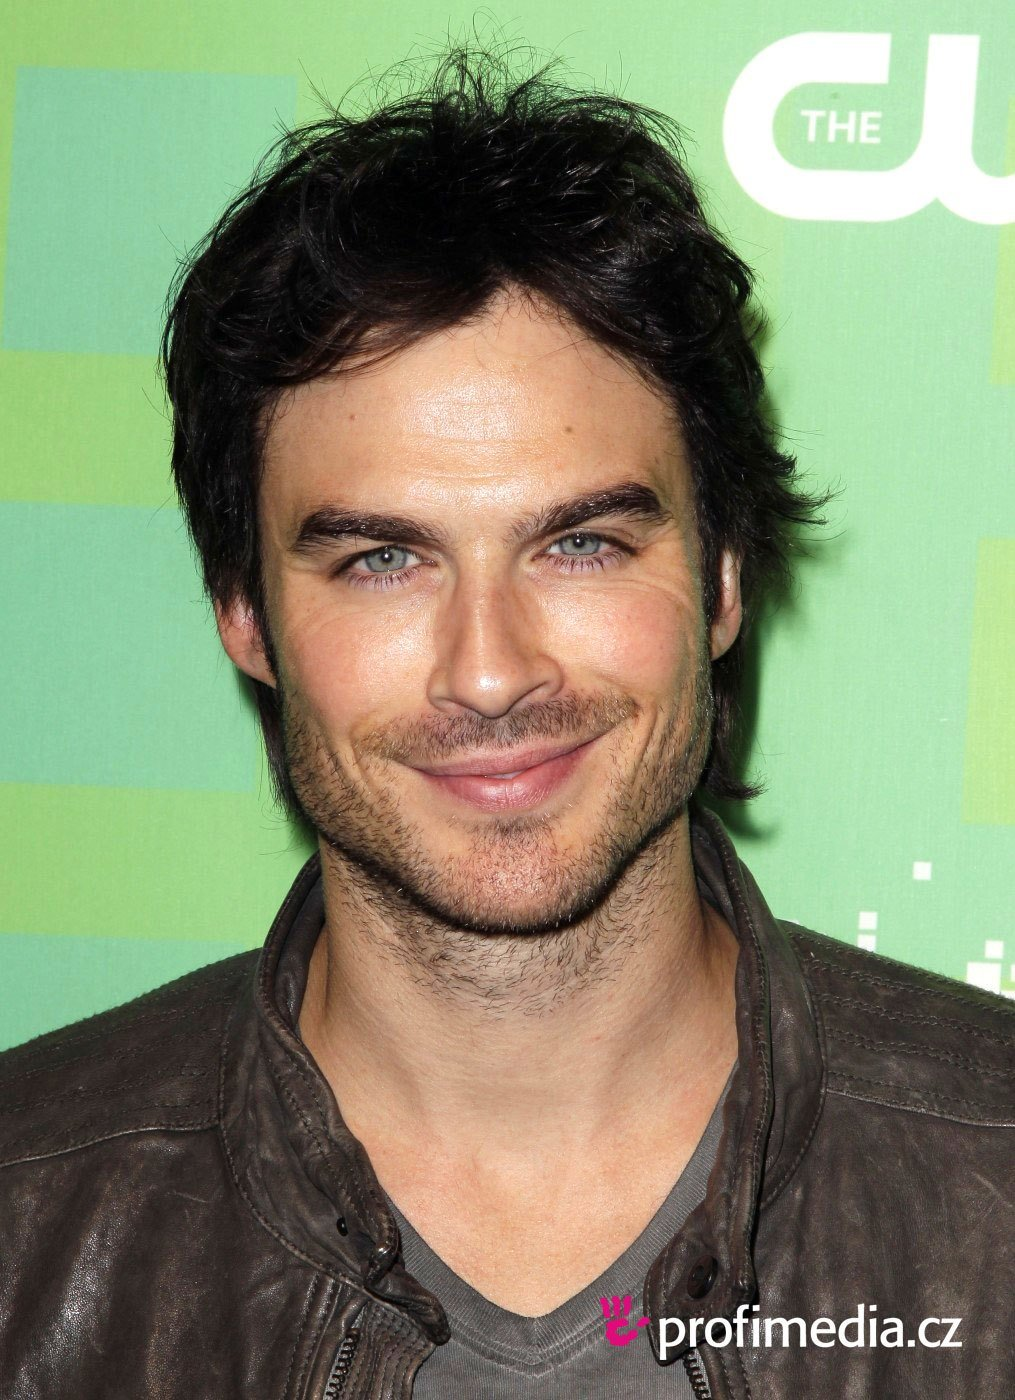 The Best Ian Somerhalder Hairstyle Fade Haircut Pictures